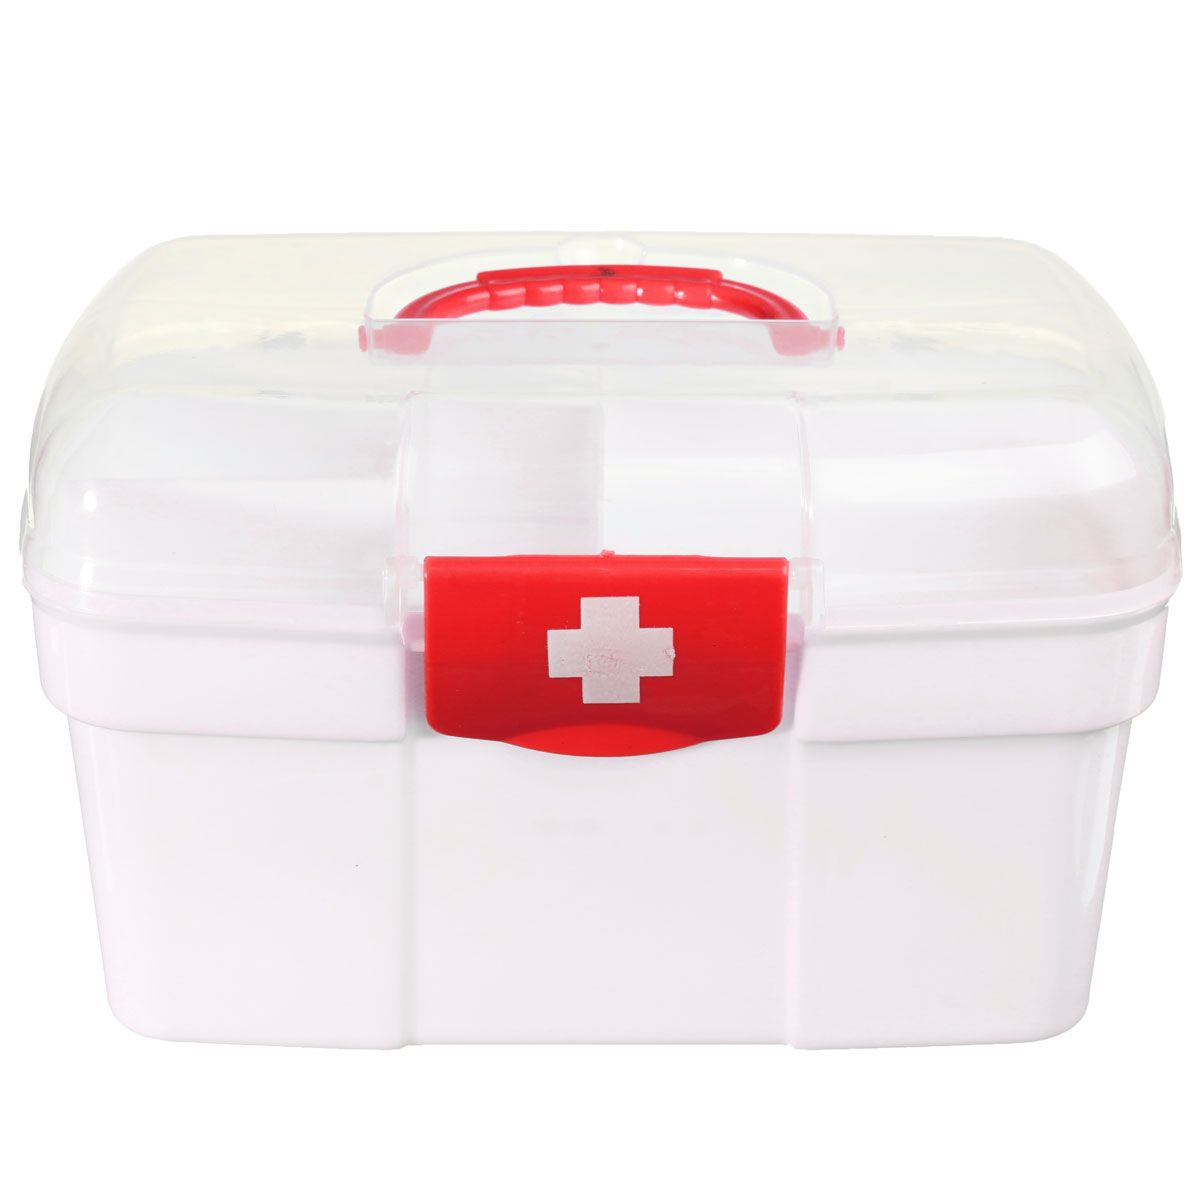 NEW Plastic 2 Layers Home Medicine Chest First Aid Kit Holder Storage Box Emergency Kits Security Safety